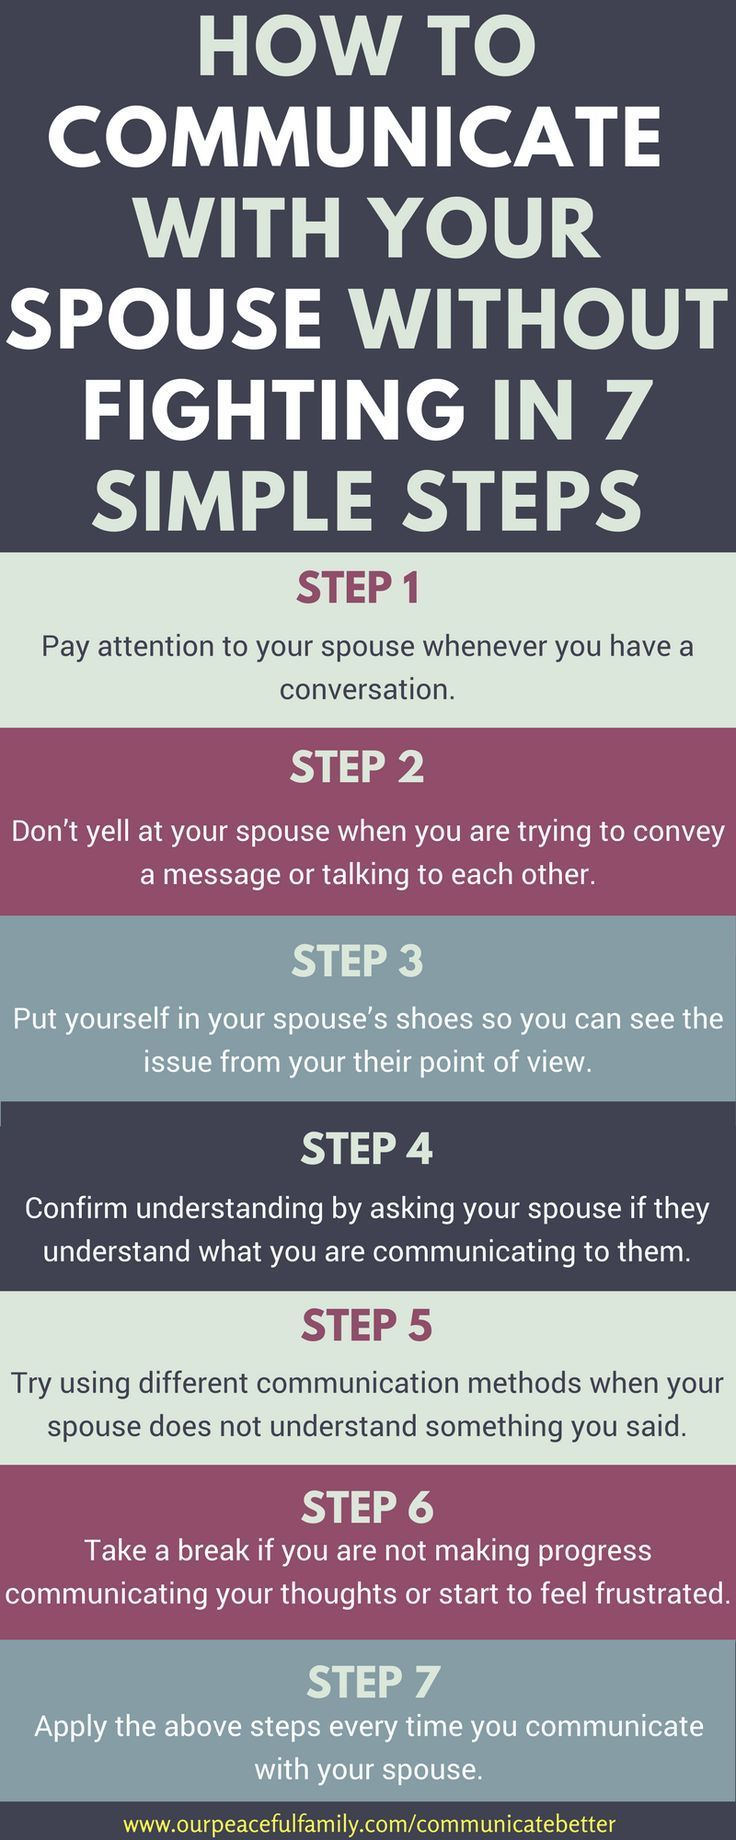 Ways to communicate better with your spouse